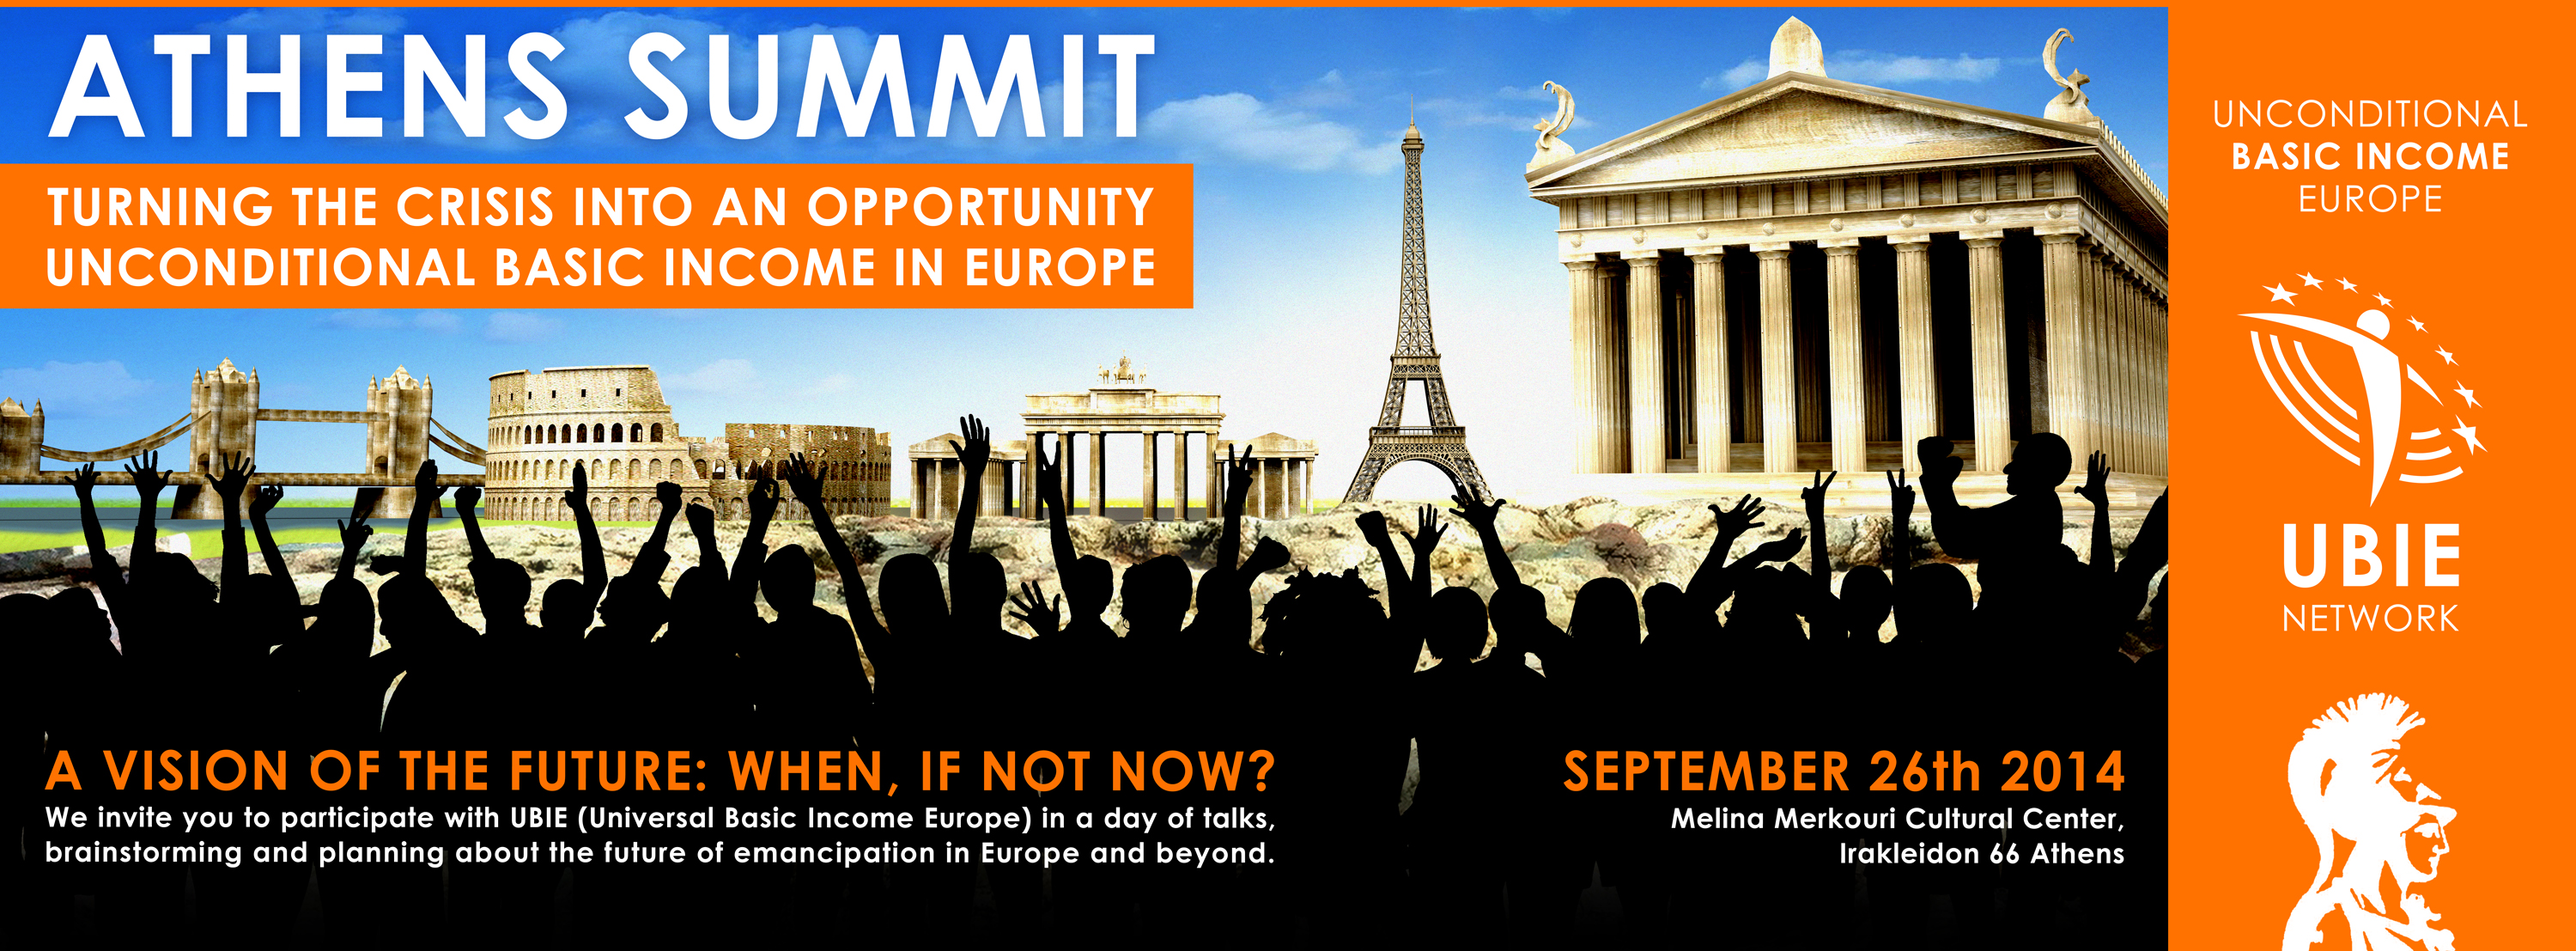 02_Athens_Summit_2014_Poster_Final_Facebook_Campaign